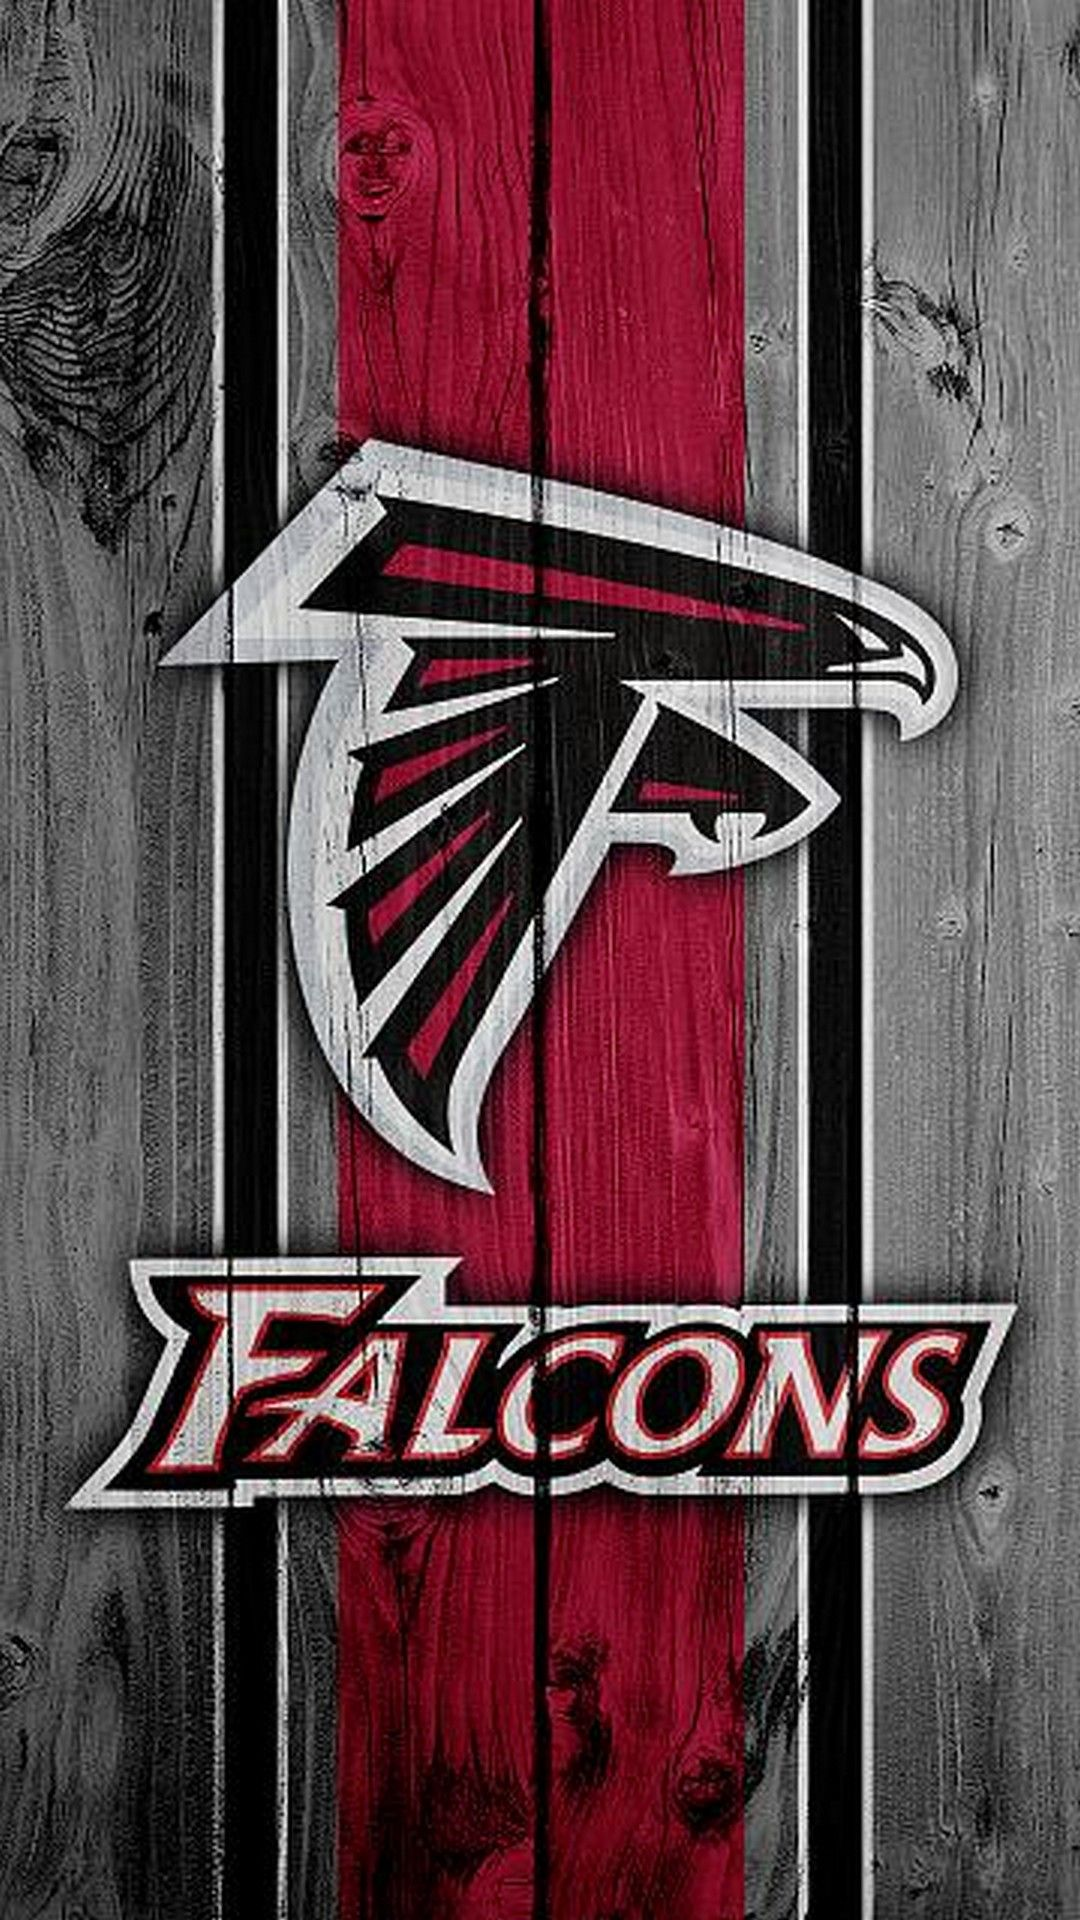 Atlanta Falcons Iphone Wallpaper Hd Best Nfl Wallpaper Atlanta Falcons Wallpaper Atlanta Falcons Football Falcons Football